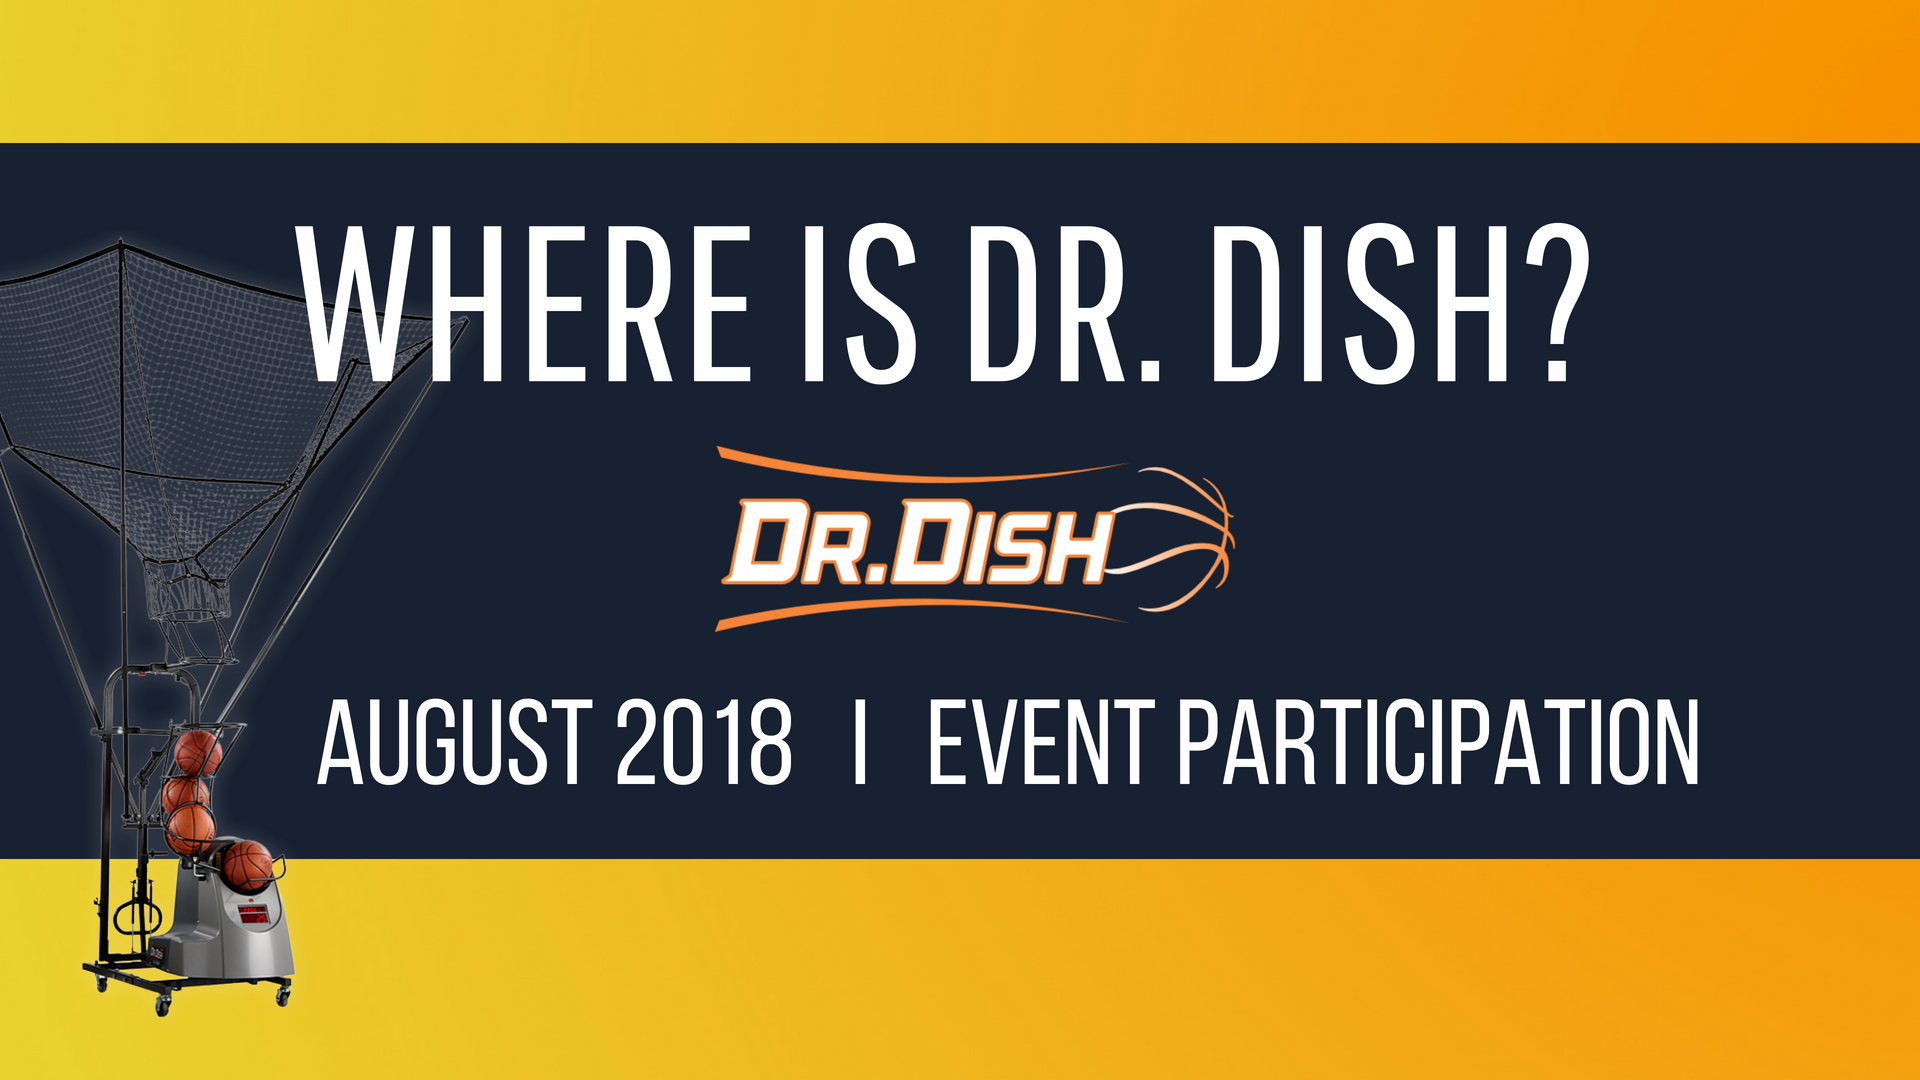 Where is Dr. Dish: August 2018